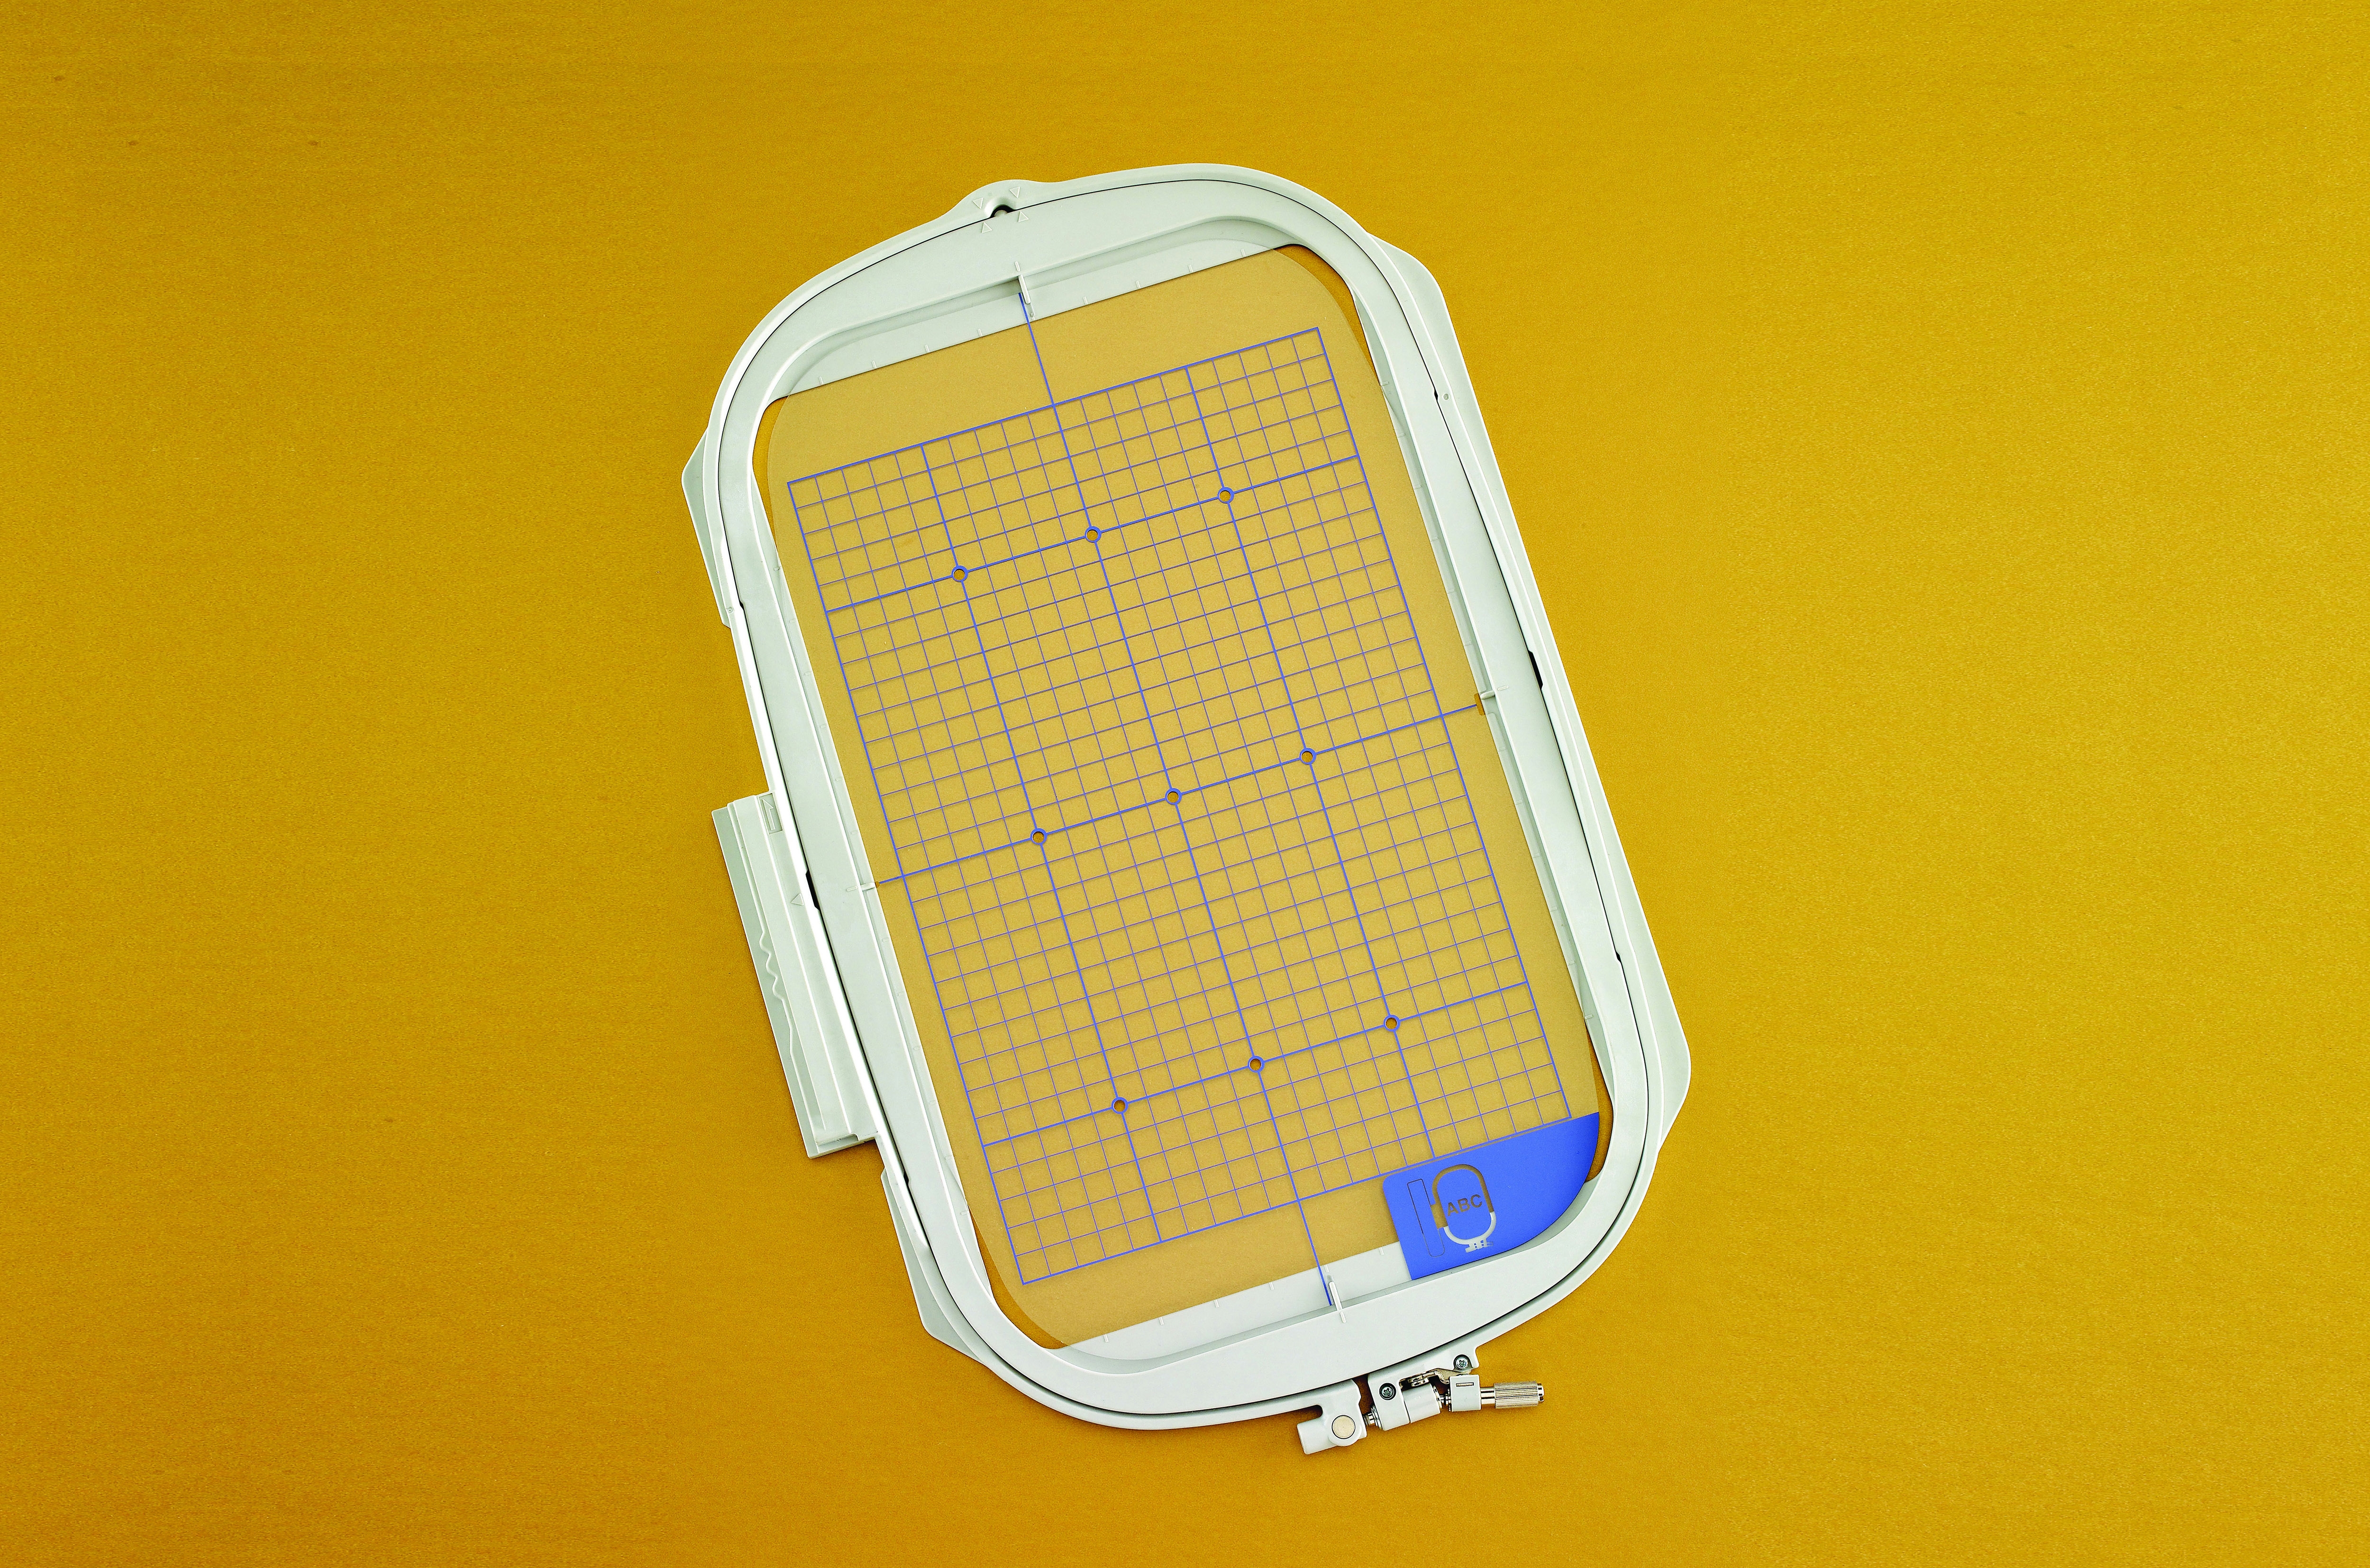 8 X 12 EMBROIDERY FRAME WITH GRID BLSO 300MM X 200MM